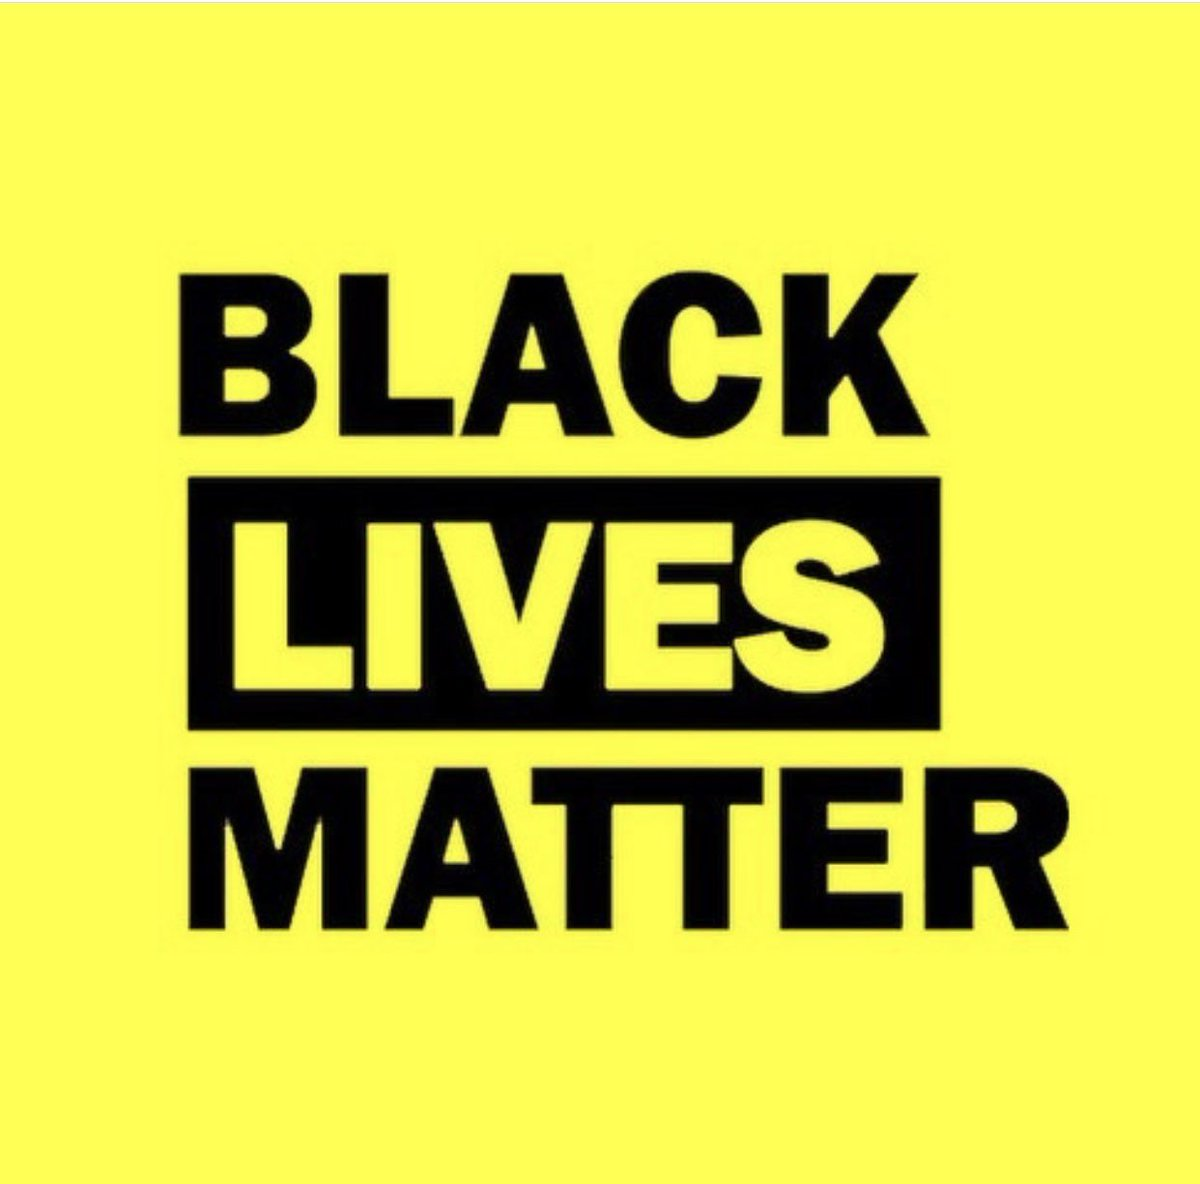 I wish this was needless to say... #BlackLivesMatter